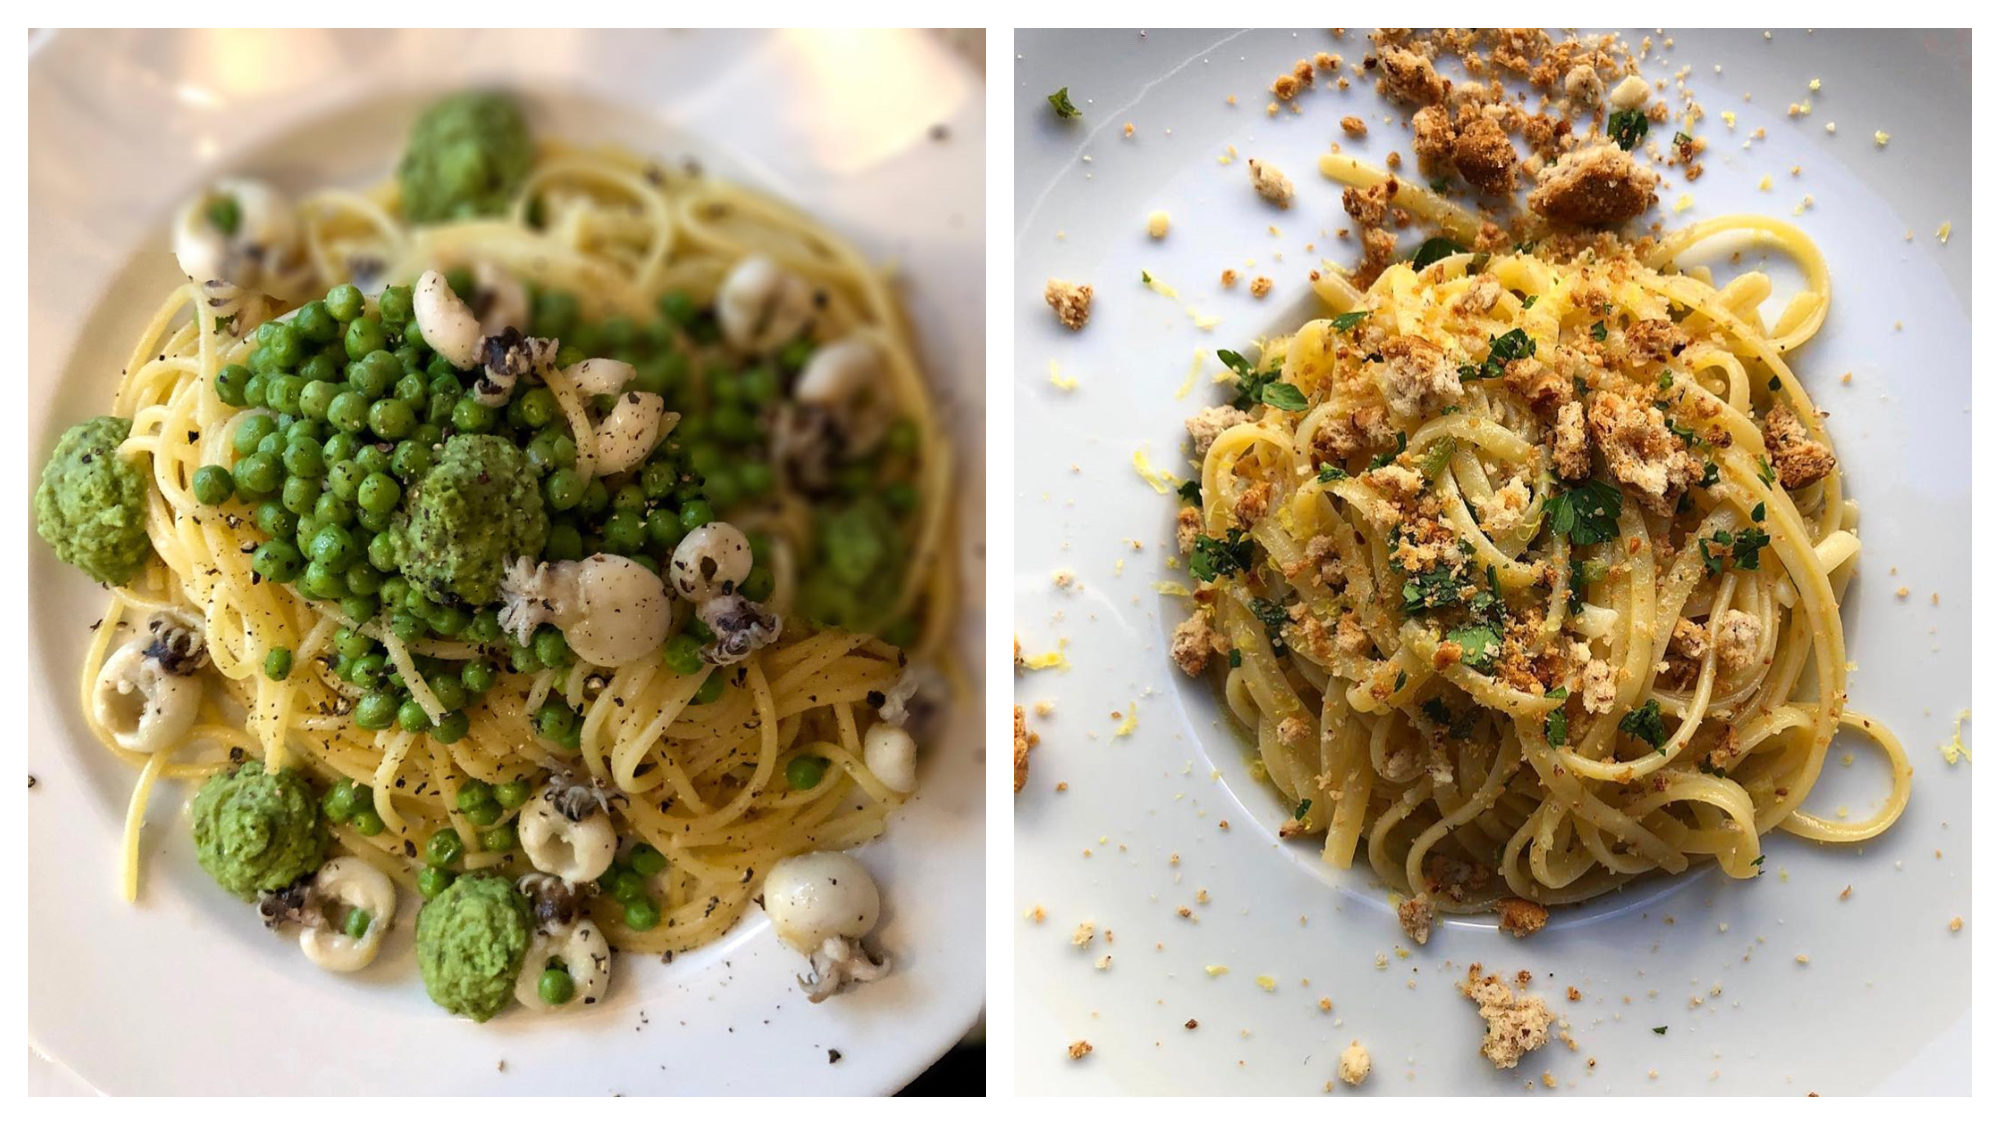 Mouth-watering spaghetti with peas and squid (left) and linguine with crumbly cheese (right) at Mimi Cave à Manger.